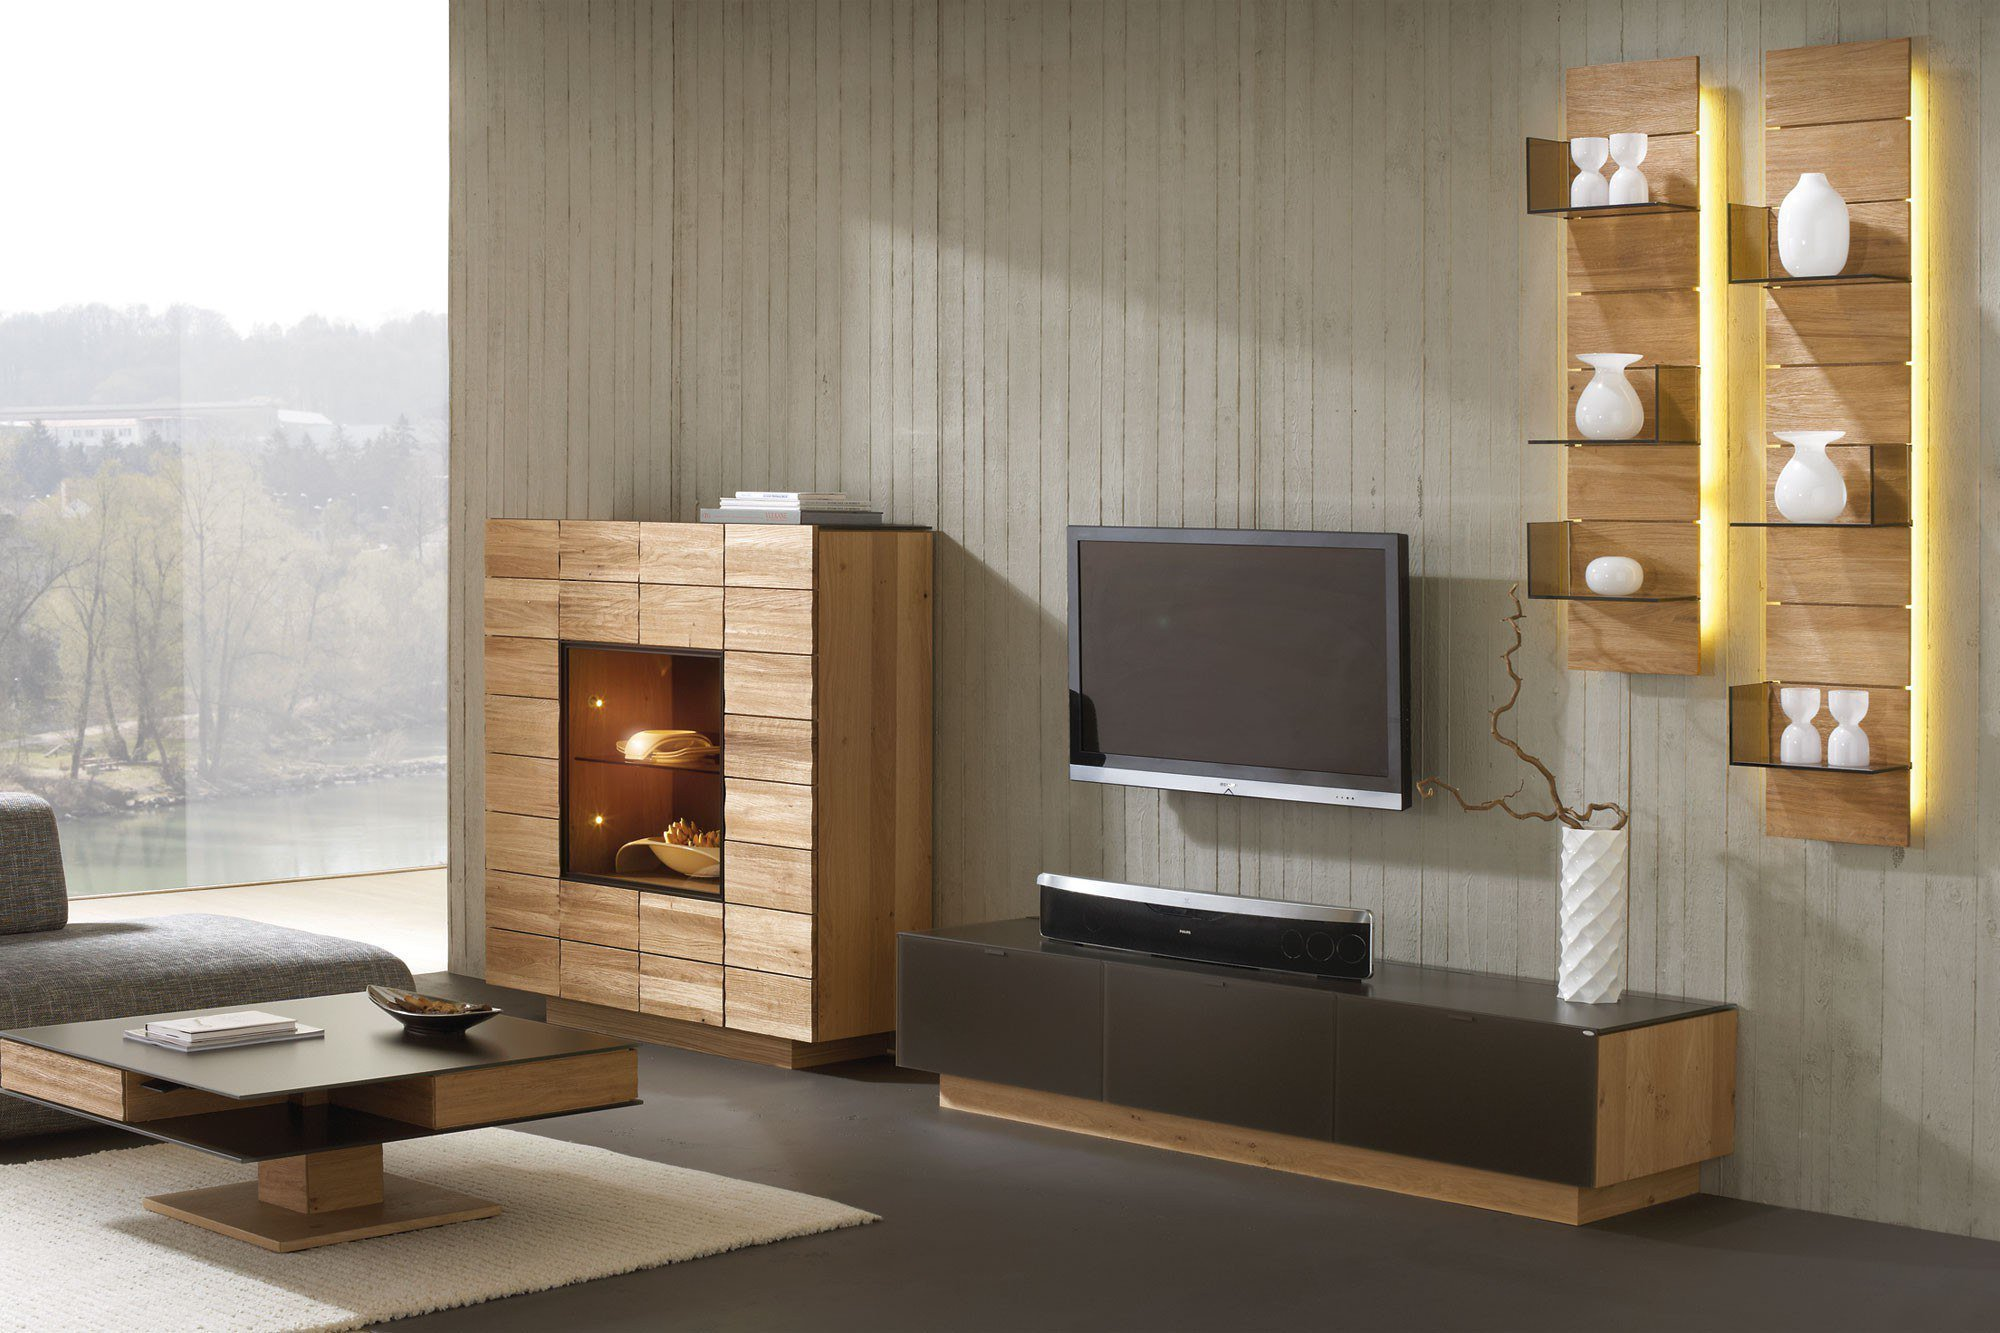 voglauer wohnwand v montana 285 braun wildeiche m bel. Black Bedroom Furniture Sets. Home Design Ideas